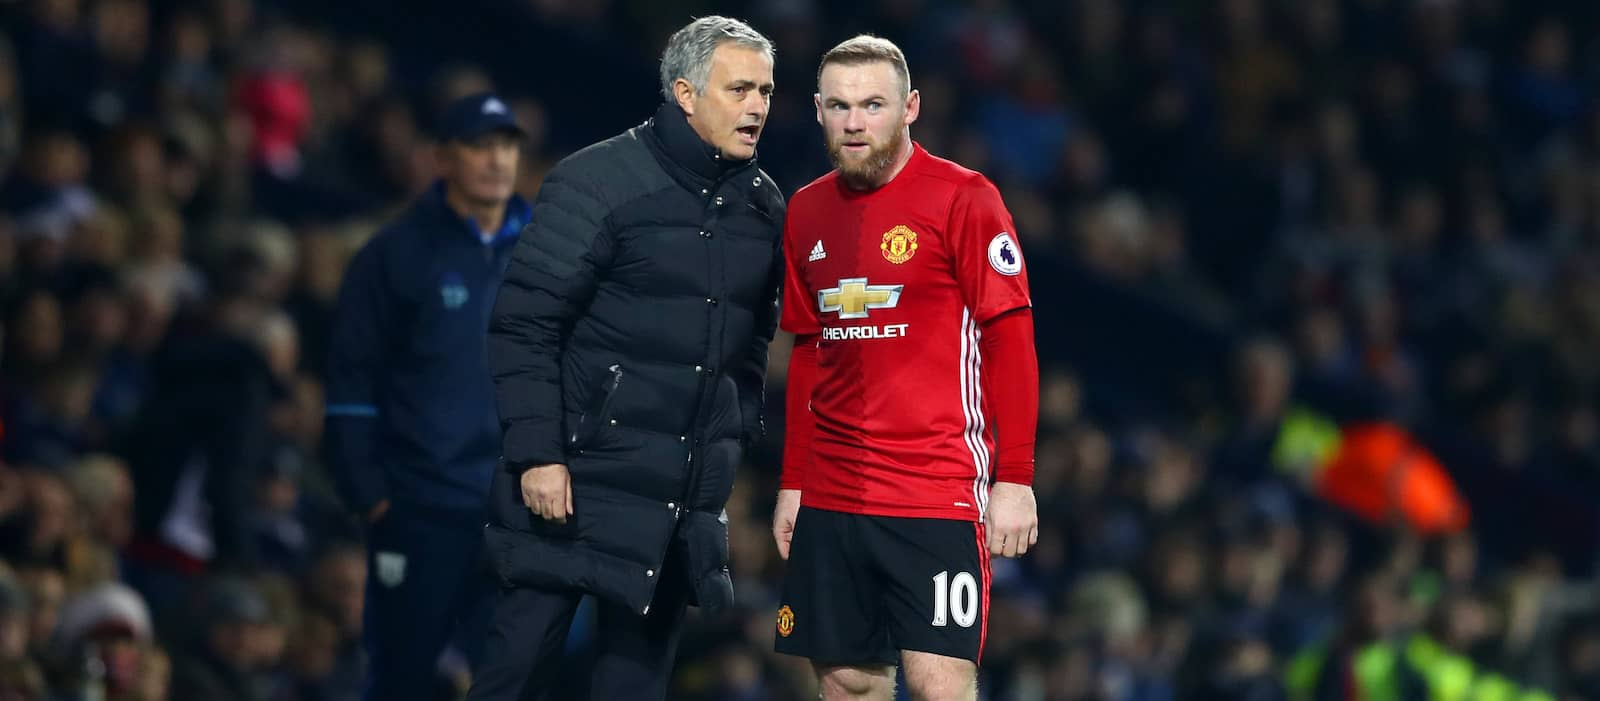 Wayne Rooney: Manchester United players are to blame for poor form, not Mourinho